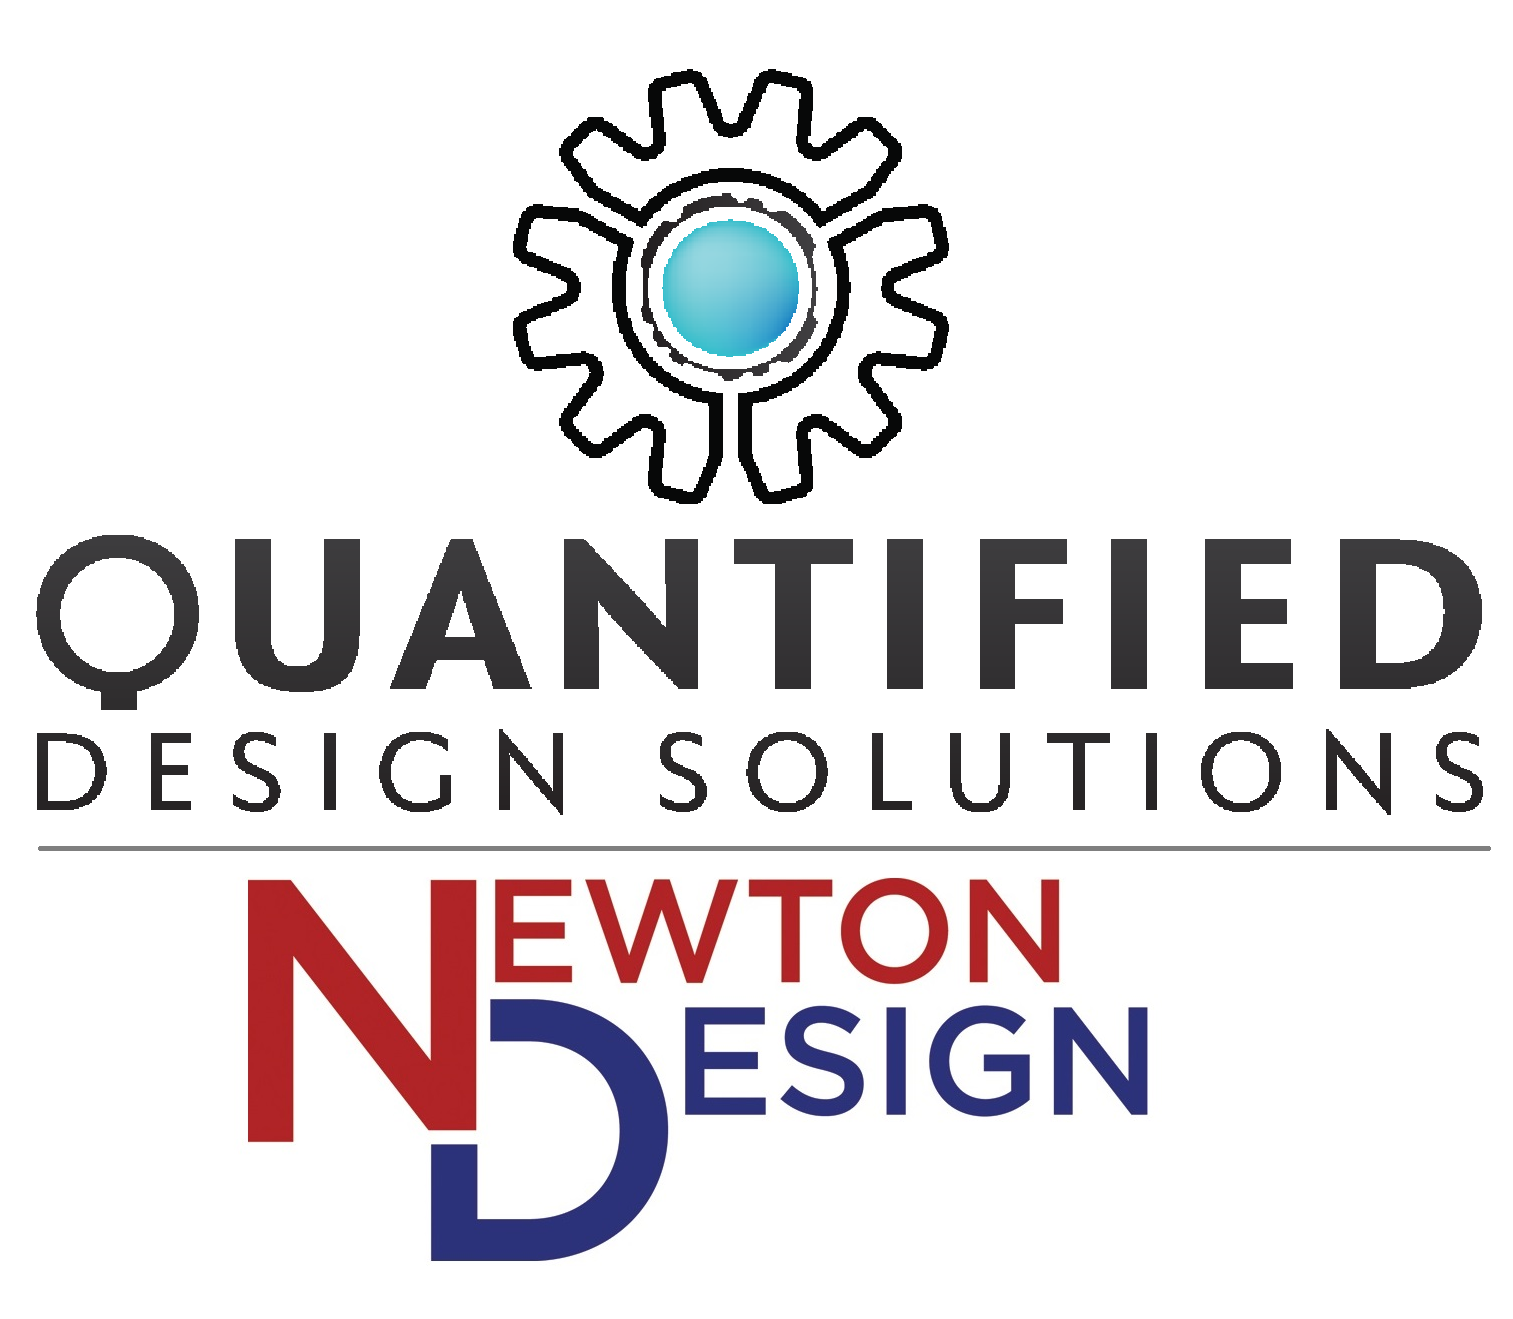 Quantified Newton Design